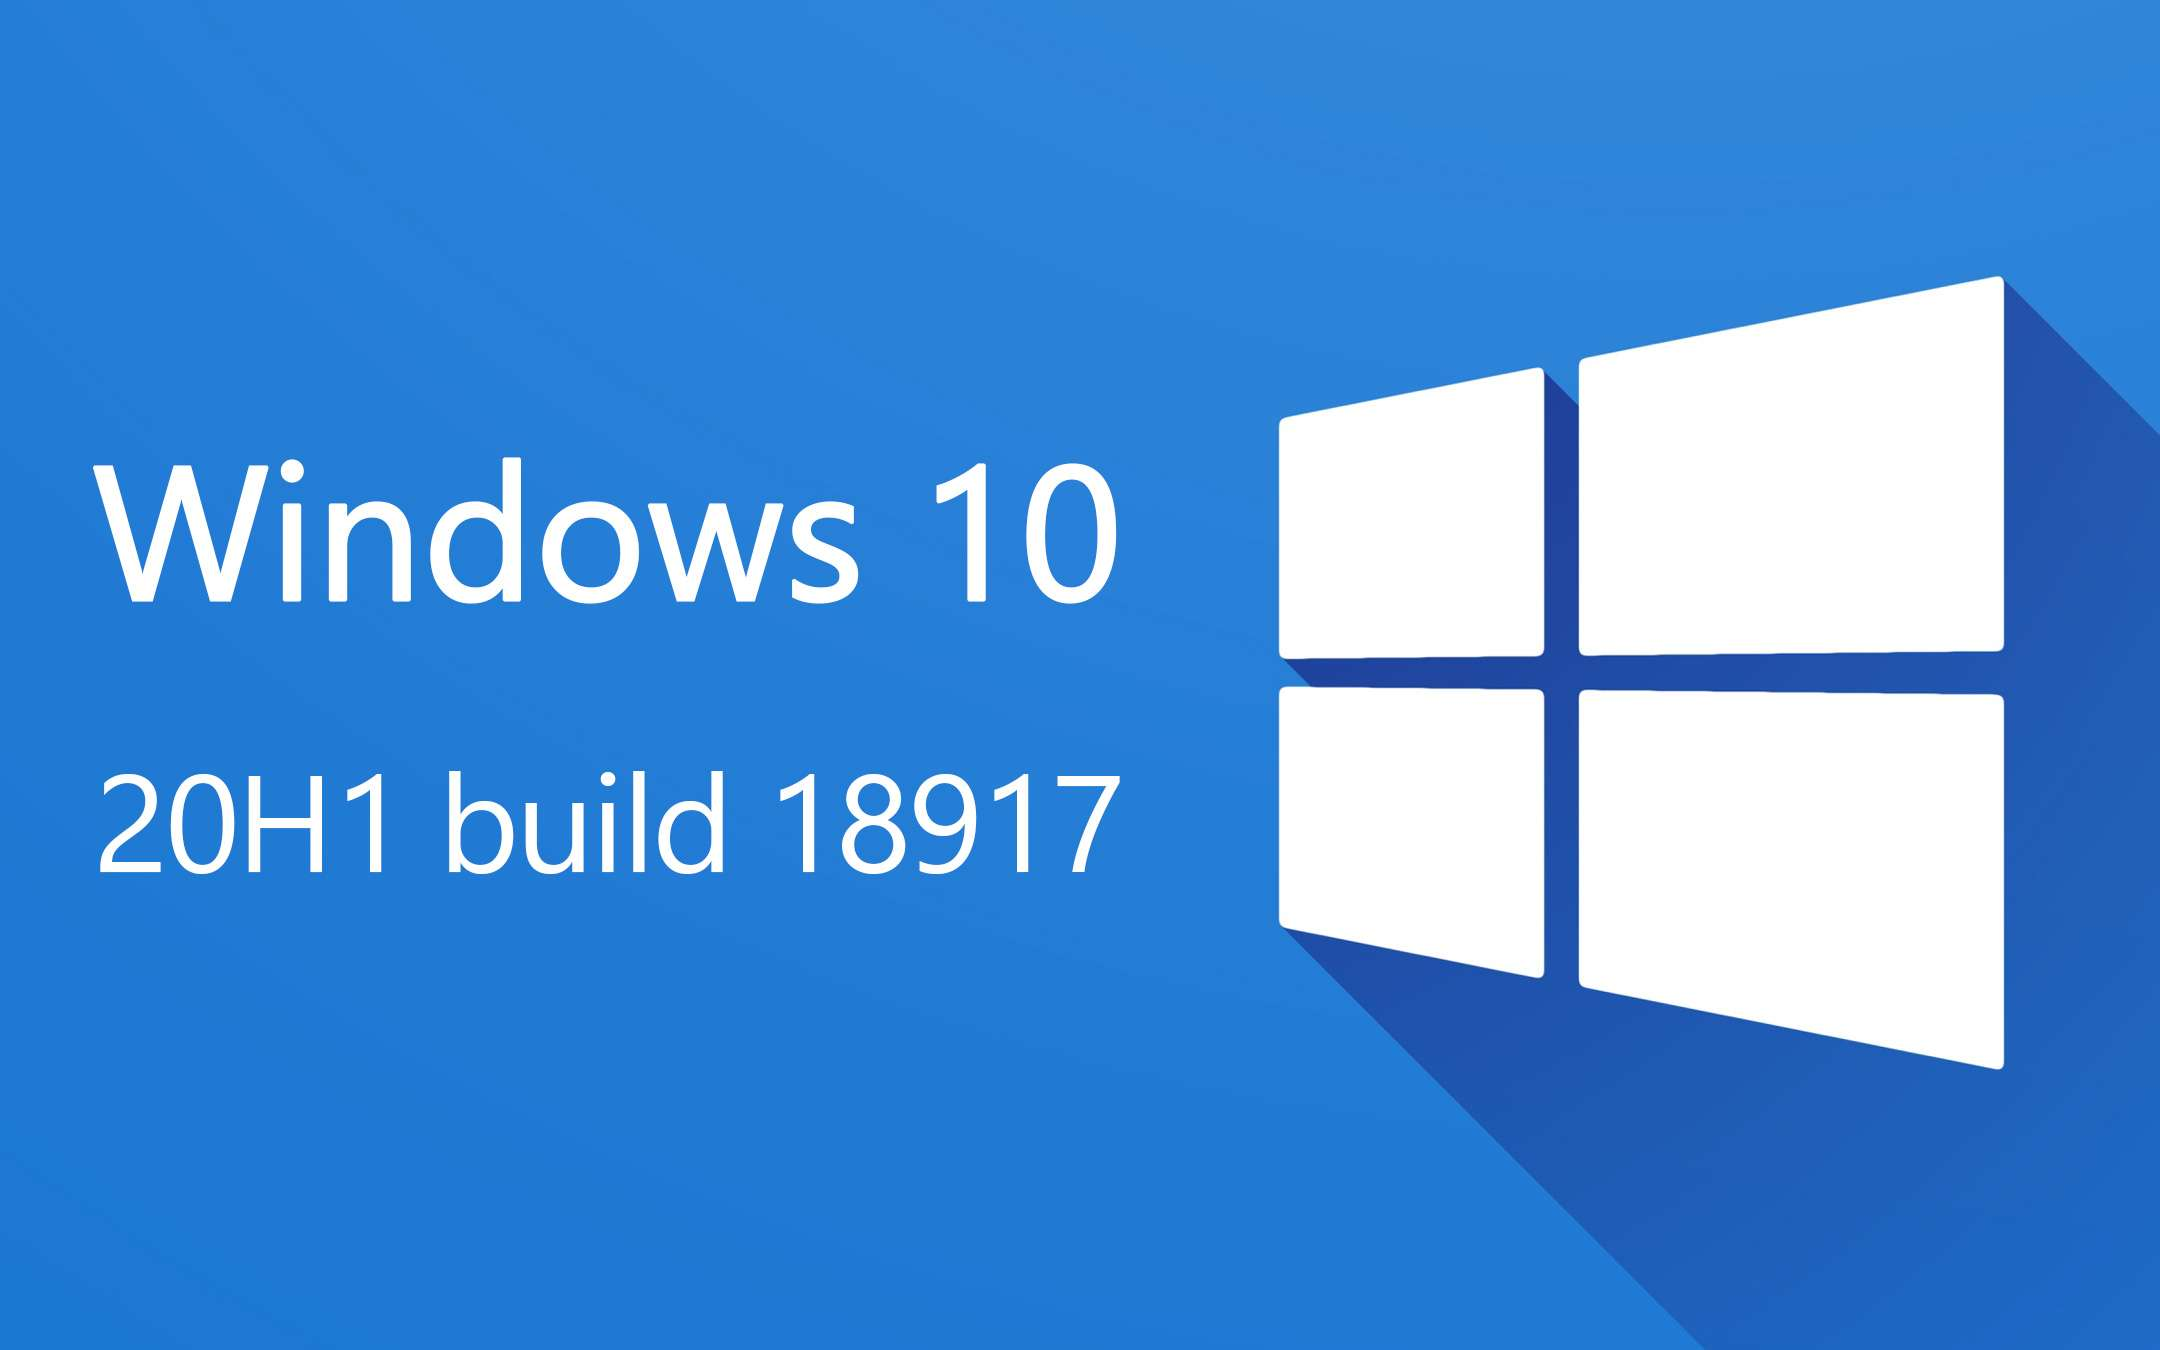 Windows 10 20H1 build 18917